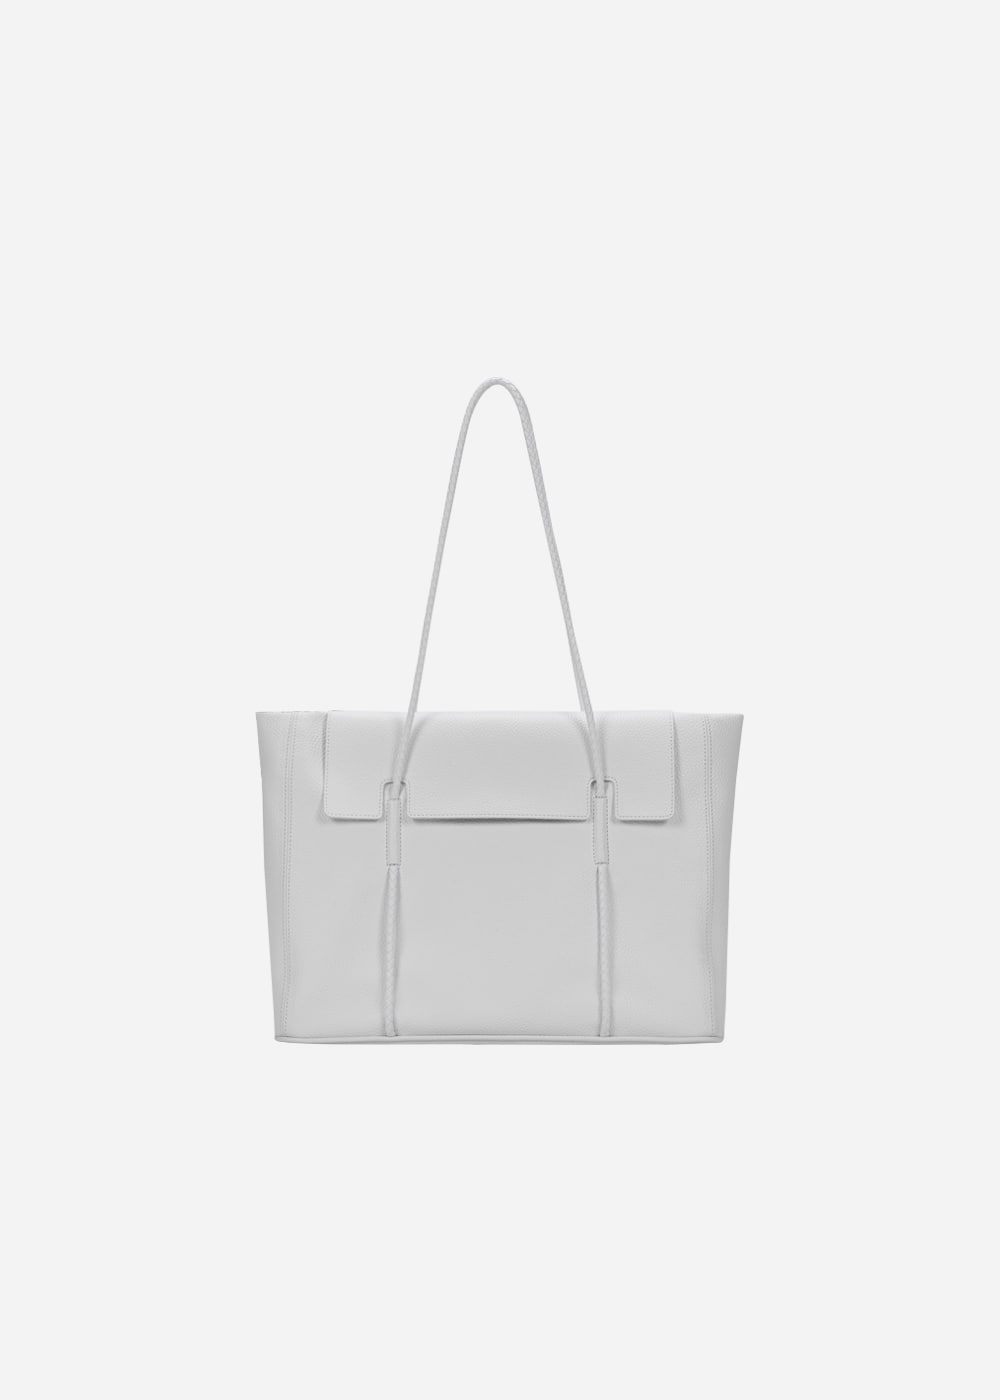 Norah Bag White Medium